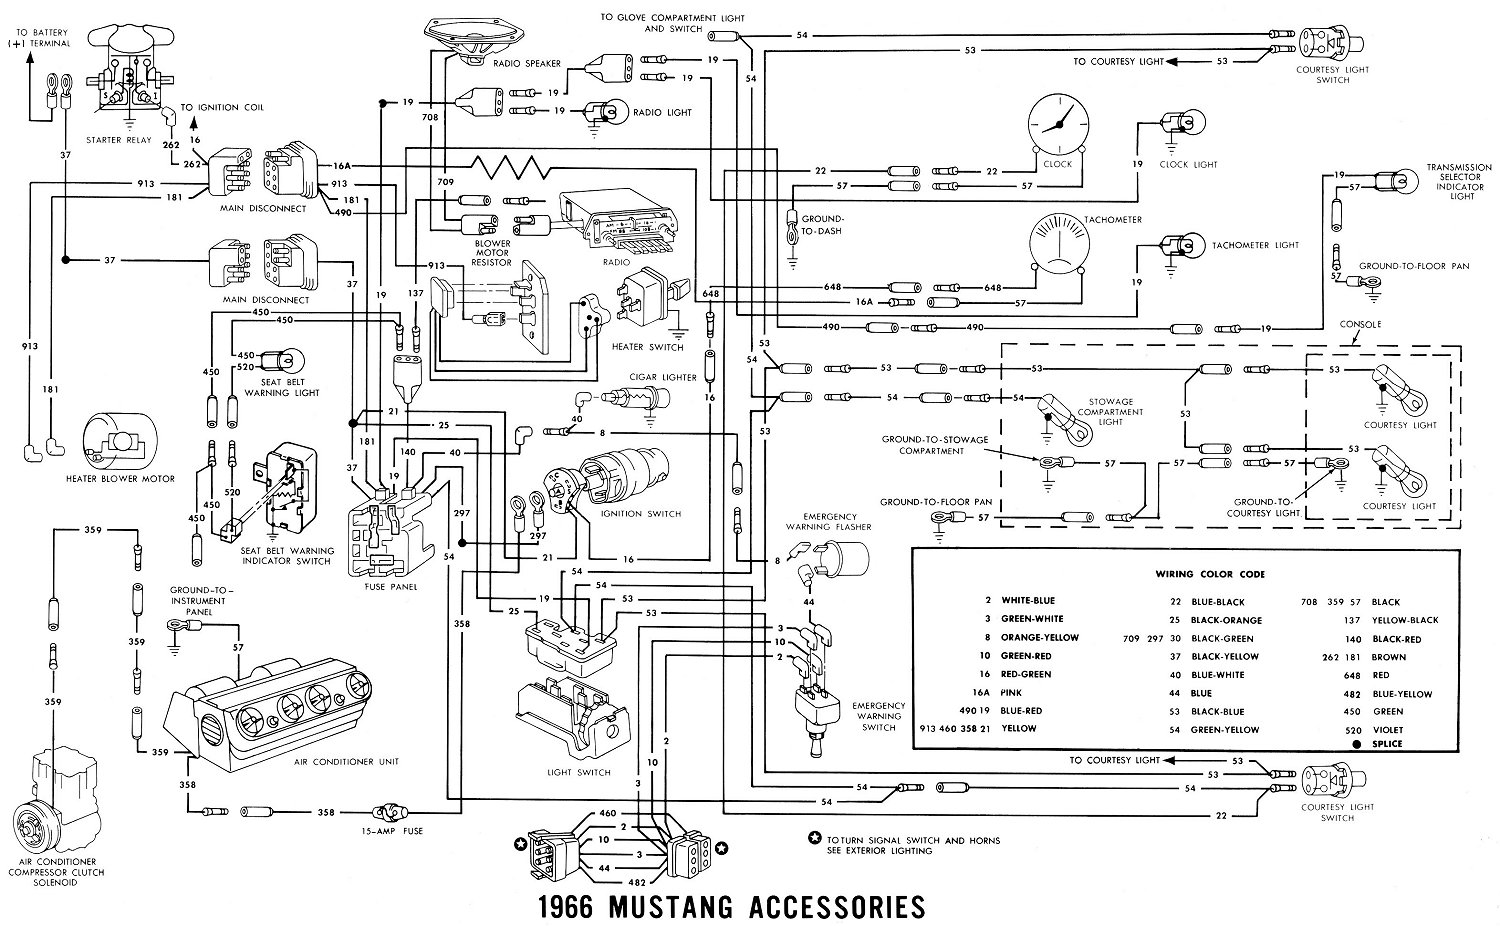 66acces1 1966 mustang wiring diagrams average joe restoration mustang wiring harness diagram at crackthecode.co